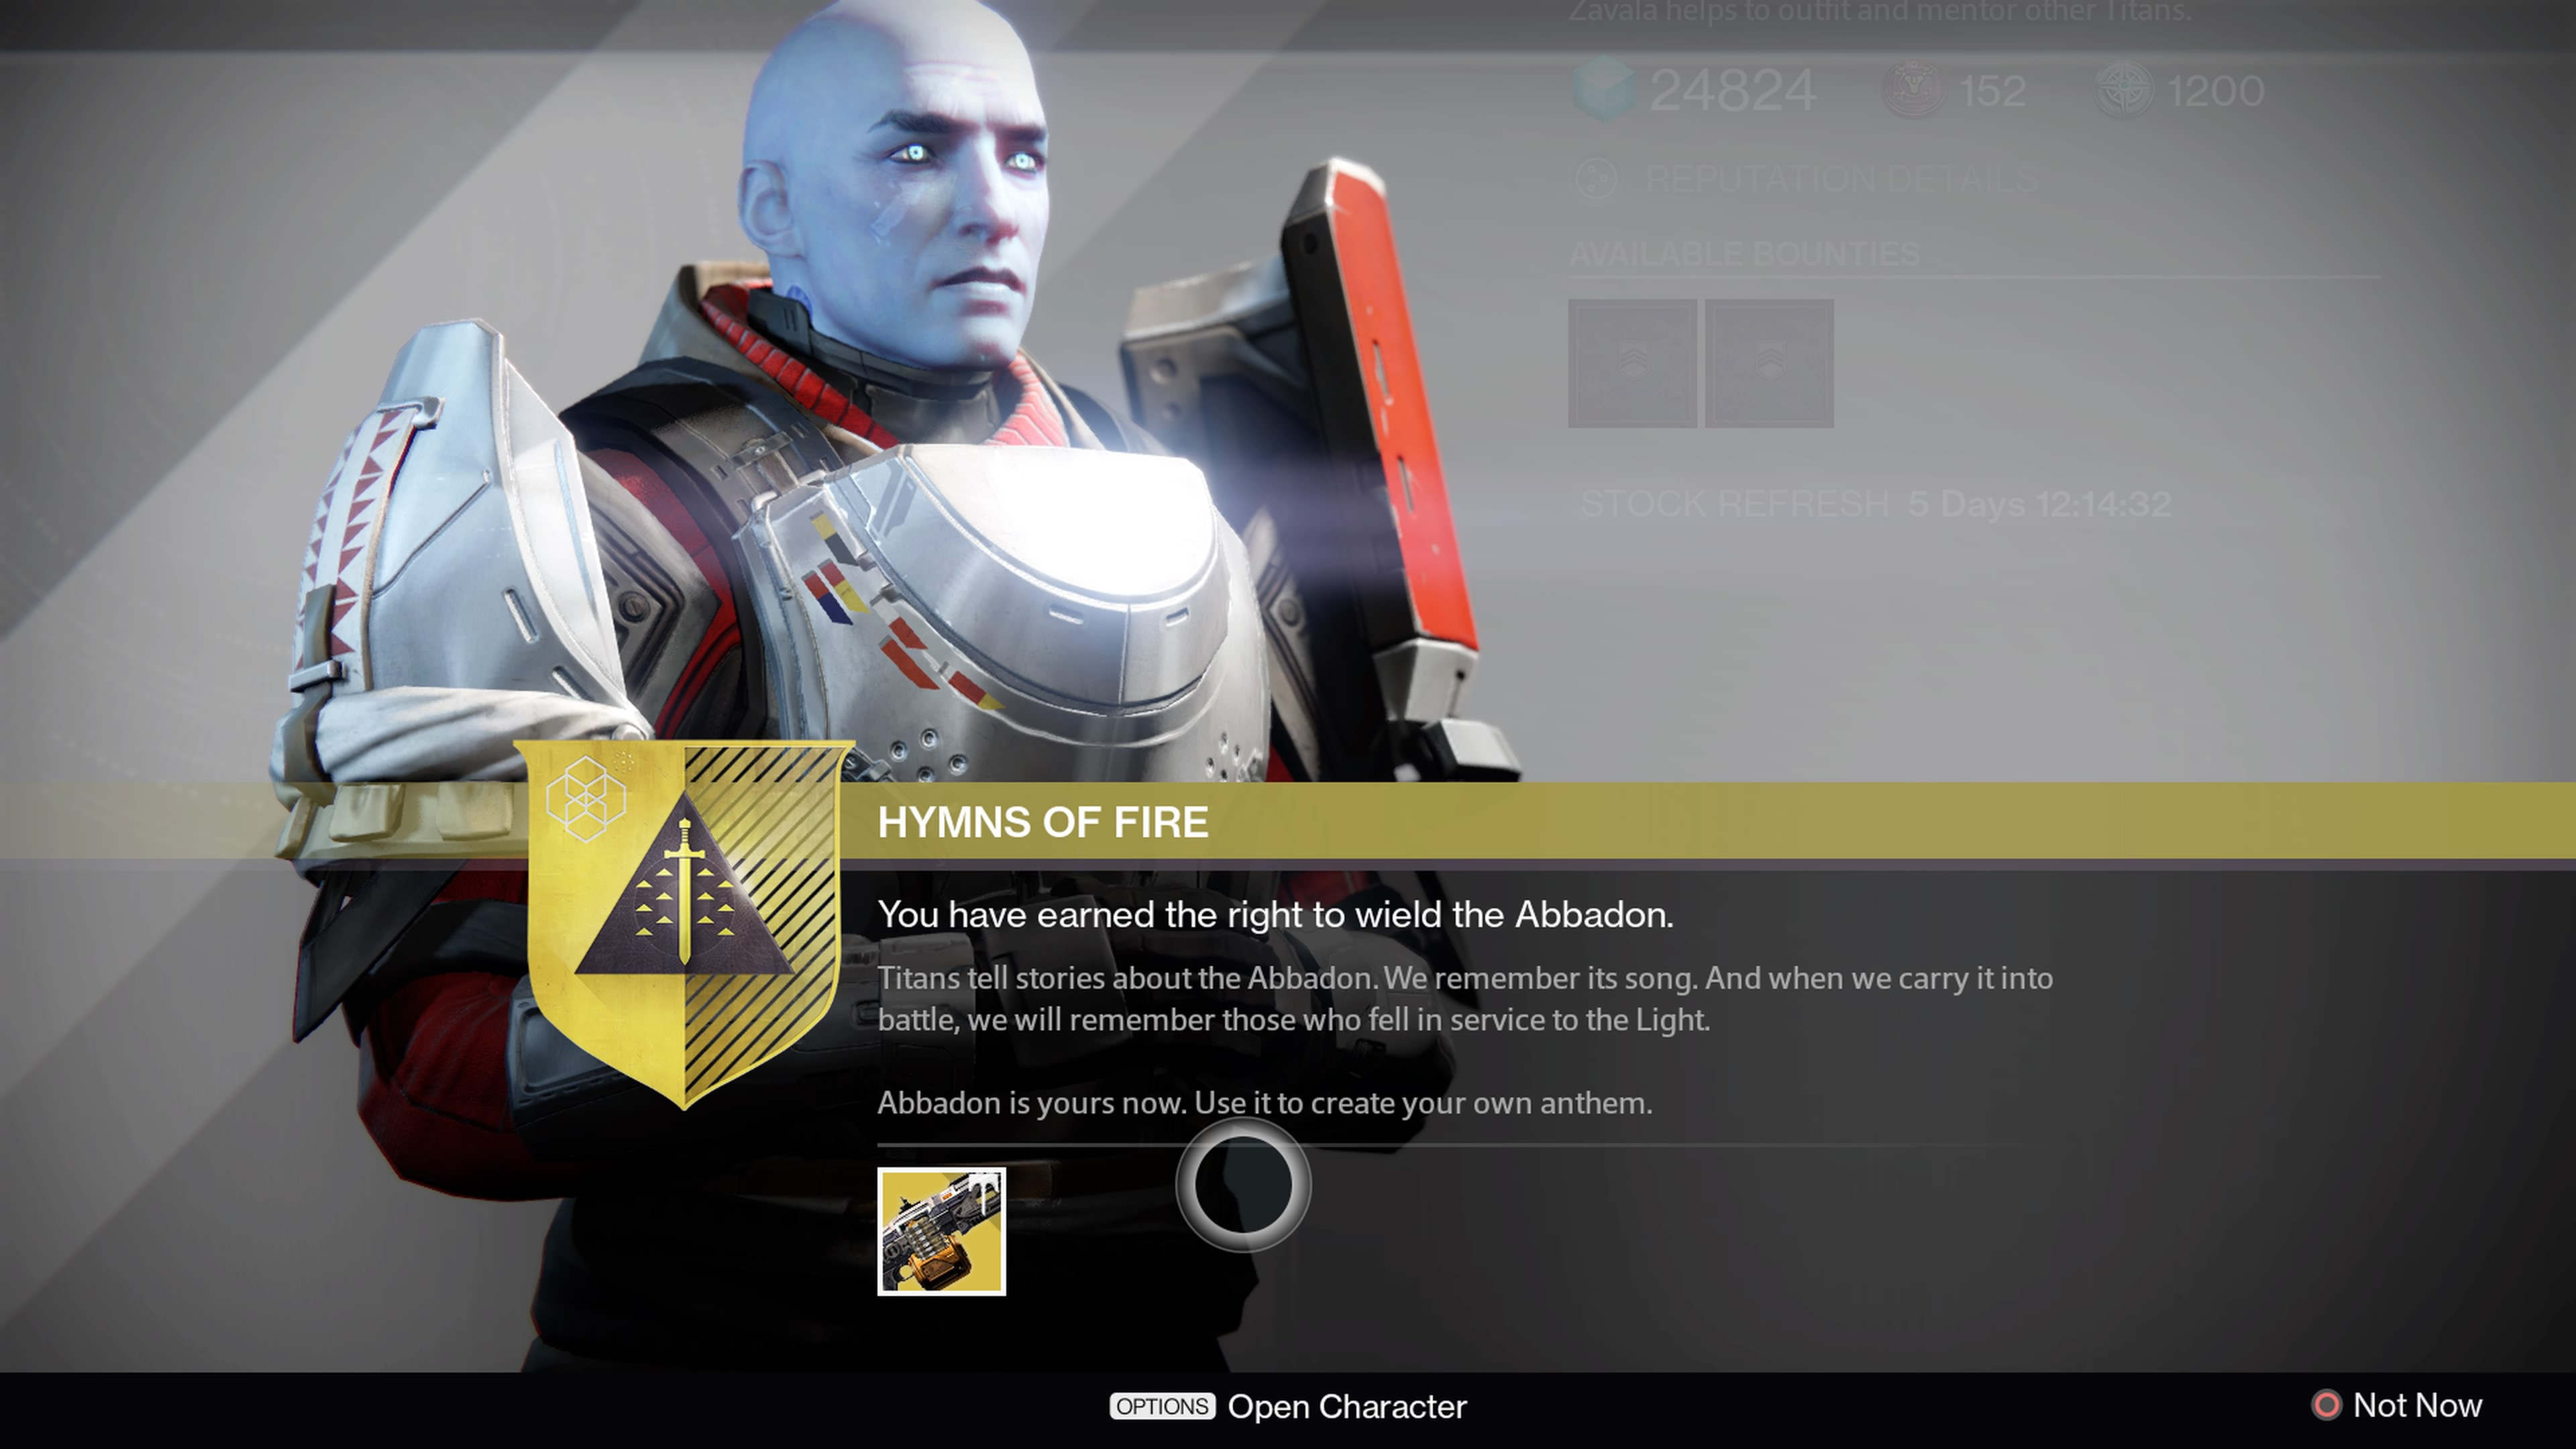 Collect the Abbadon Machinegun from Commander Zavala when you complete Hymns of Fire.